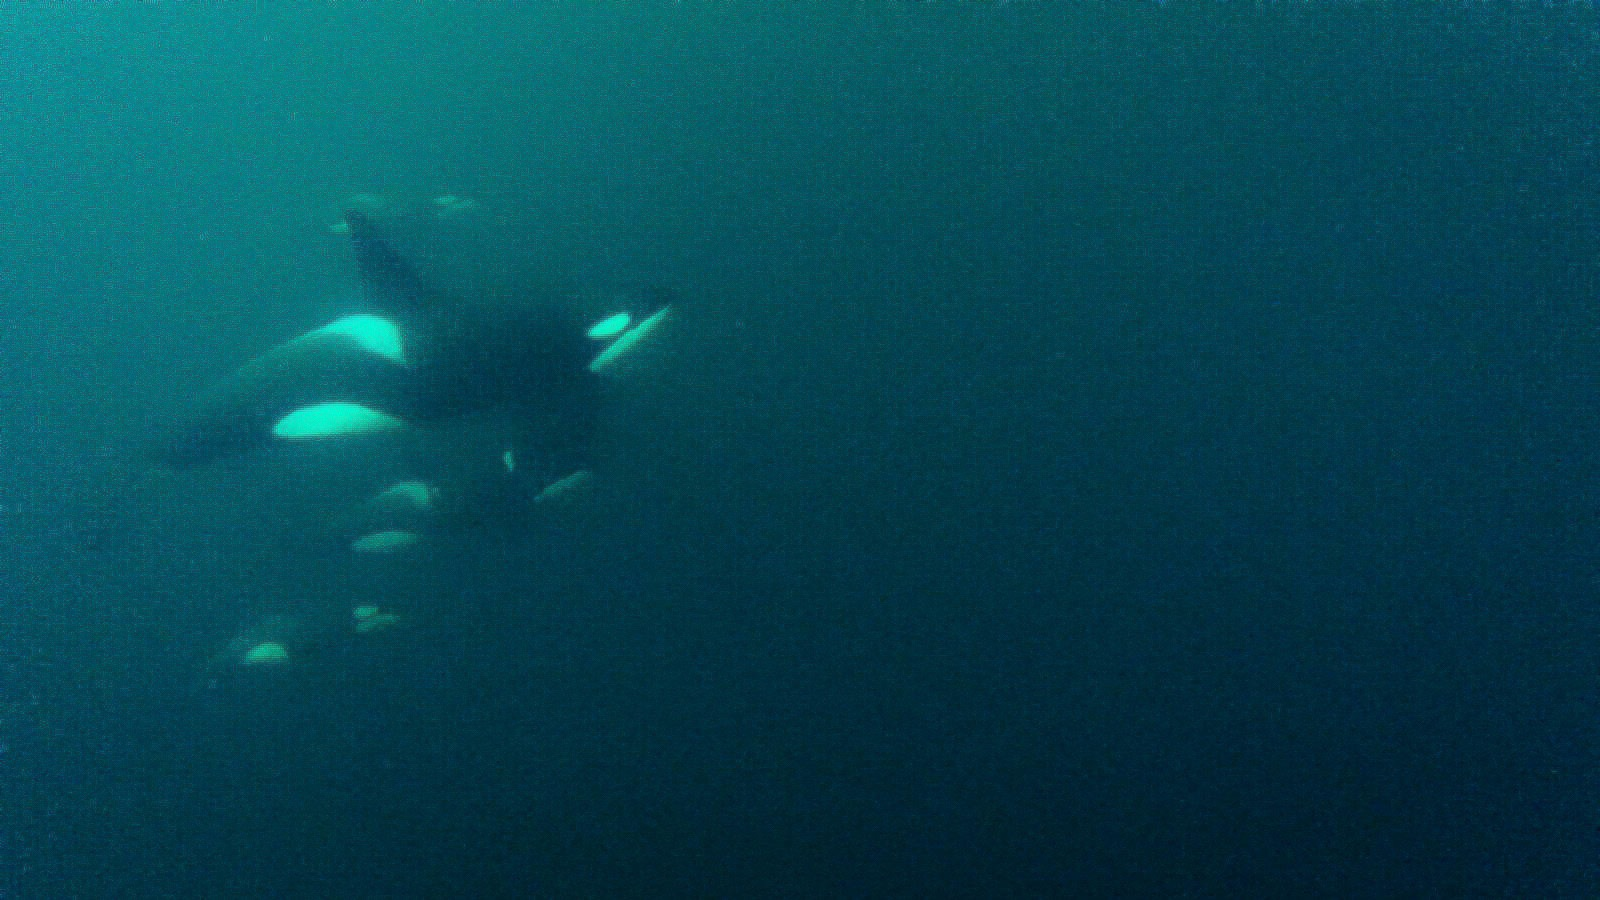 orca from film-24.jpg